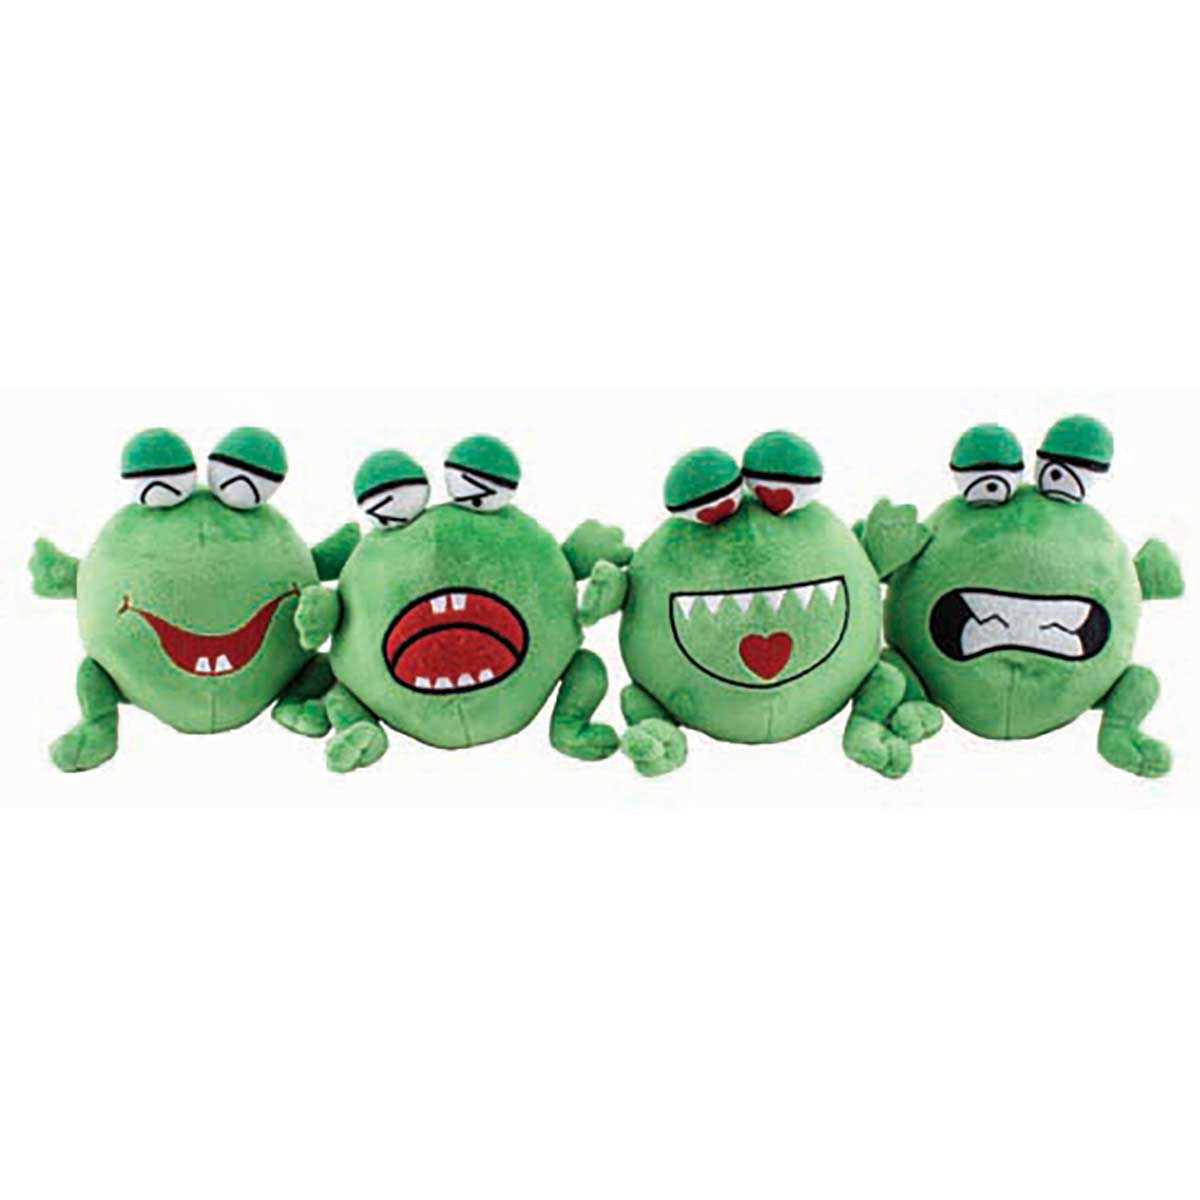 Dawgeee Toys Big Mouth Frog Stuffed Dog Toy at Ryan's Pet Supplies